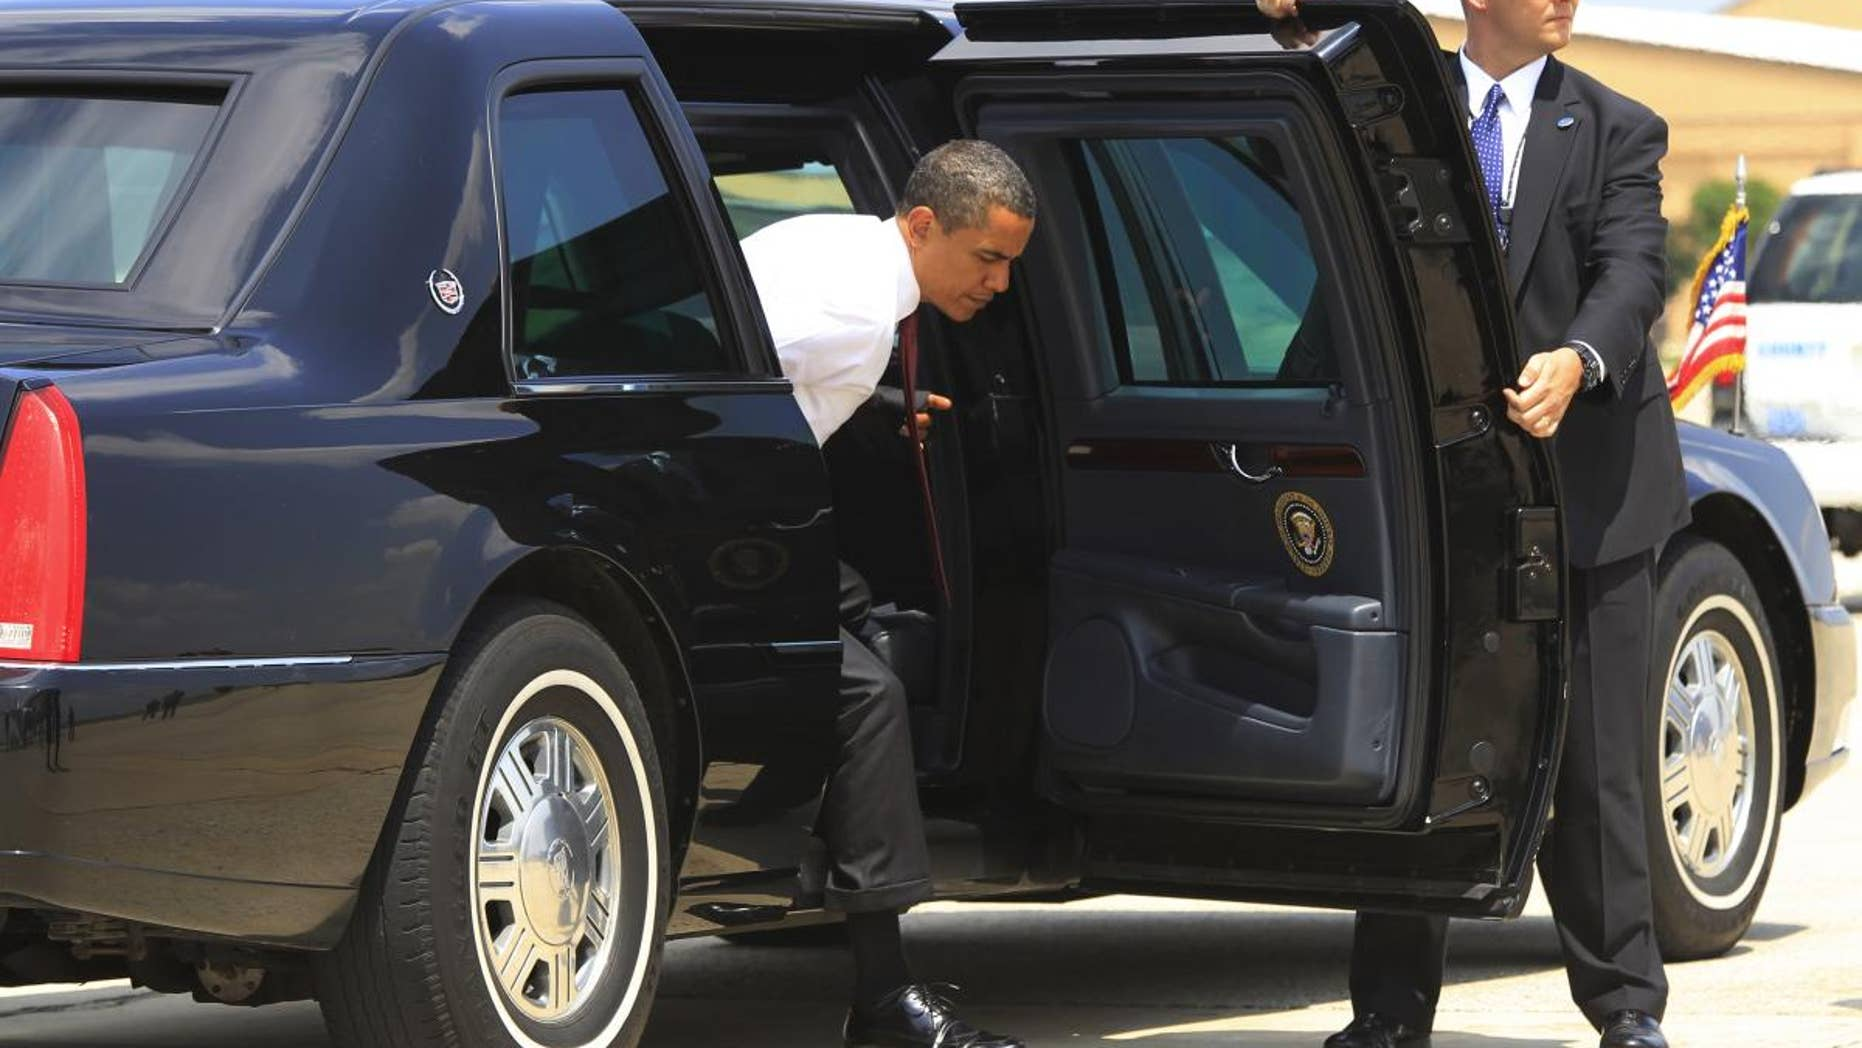 President Barack Obama steps out of the armored presidential limousine at Andrews Air Force Base. (AP File Photo/Charles Dharapak)